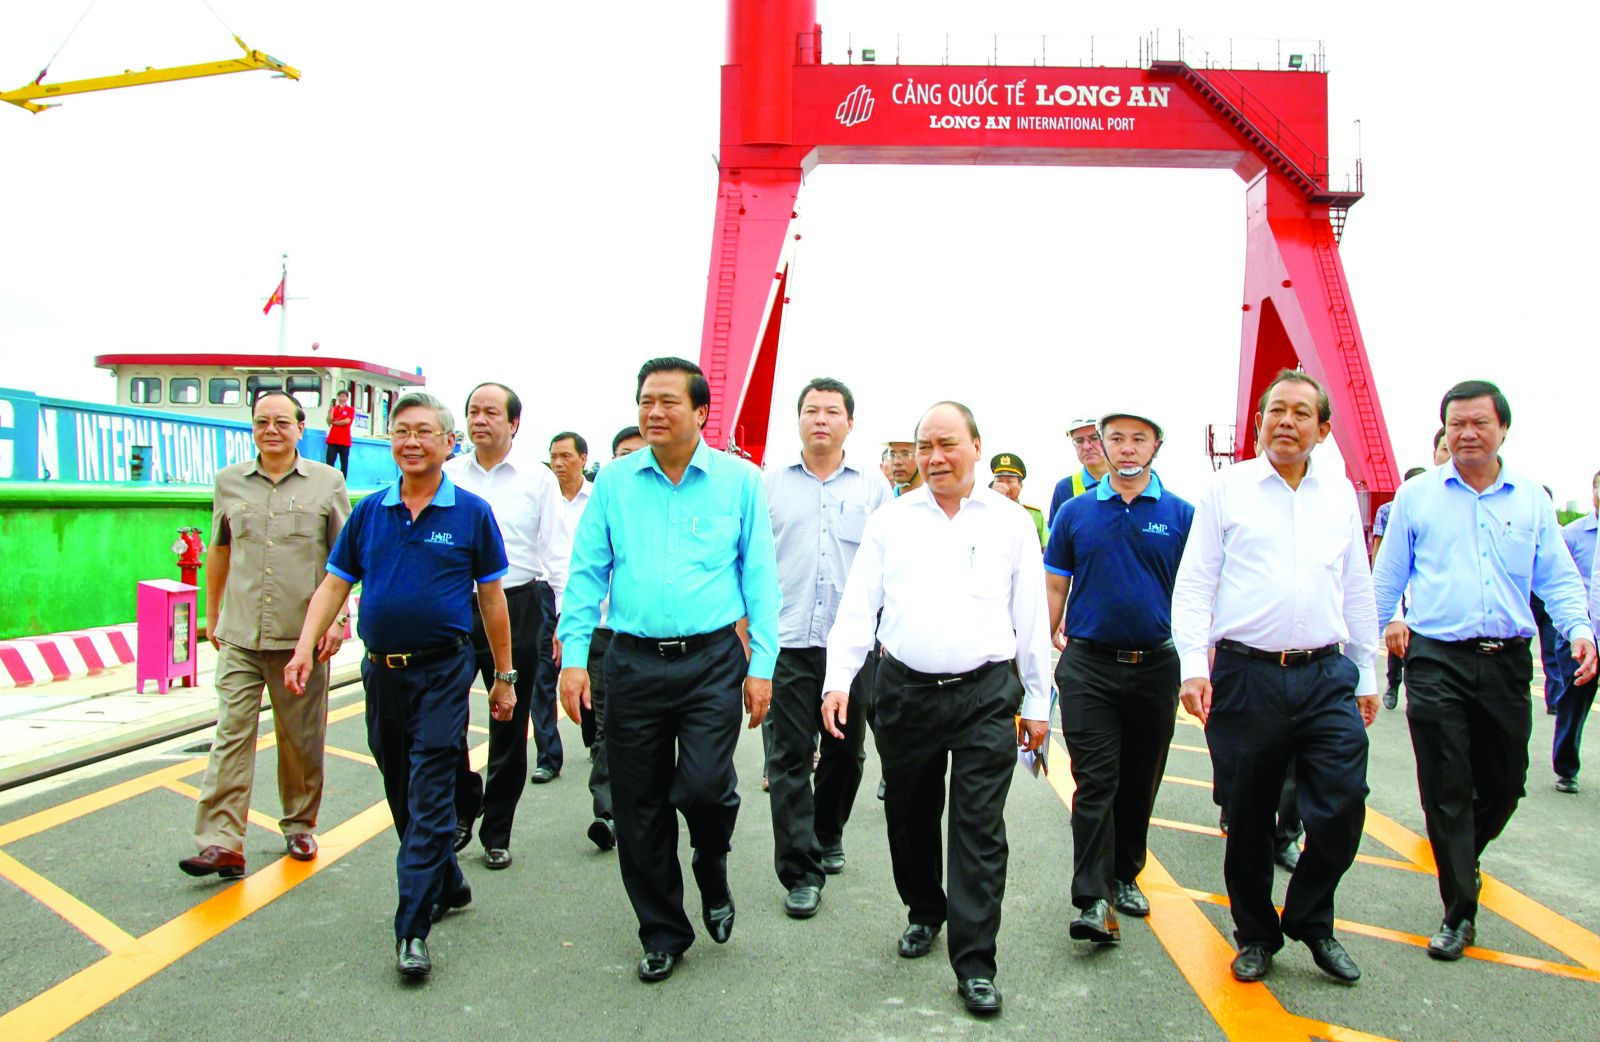 Prime Minister - Nguyen Xuan Phuc and leaders of ministries, branches and provinces visit Long An International Port (Photo: MHD)